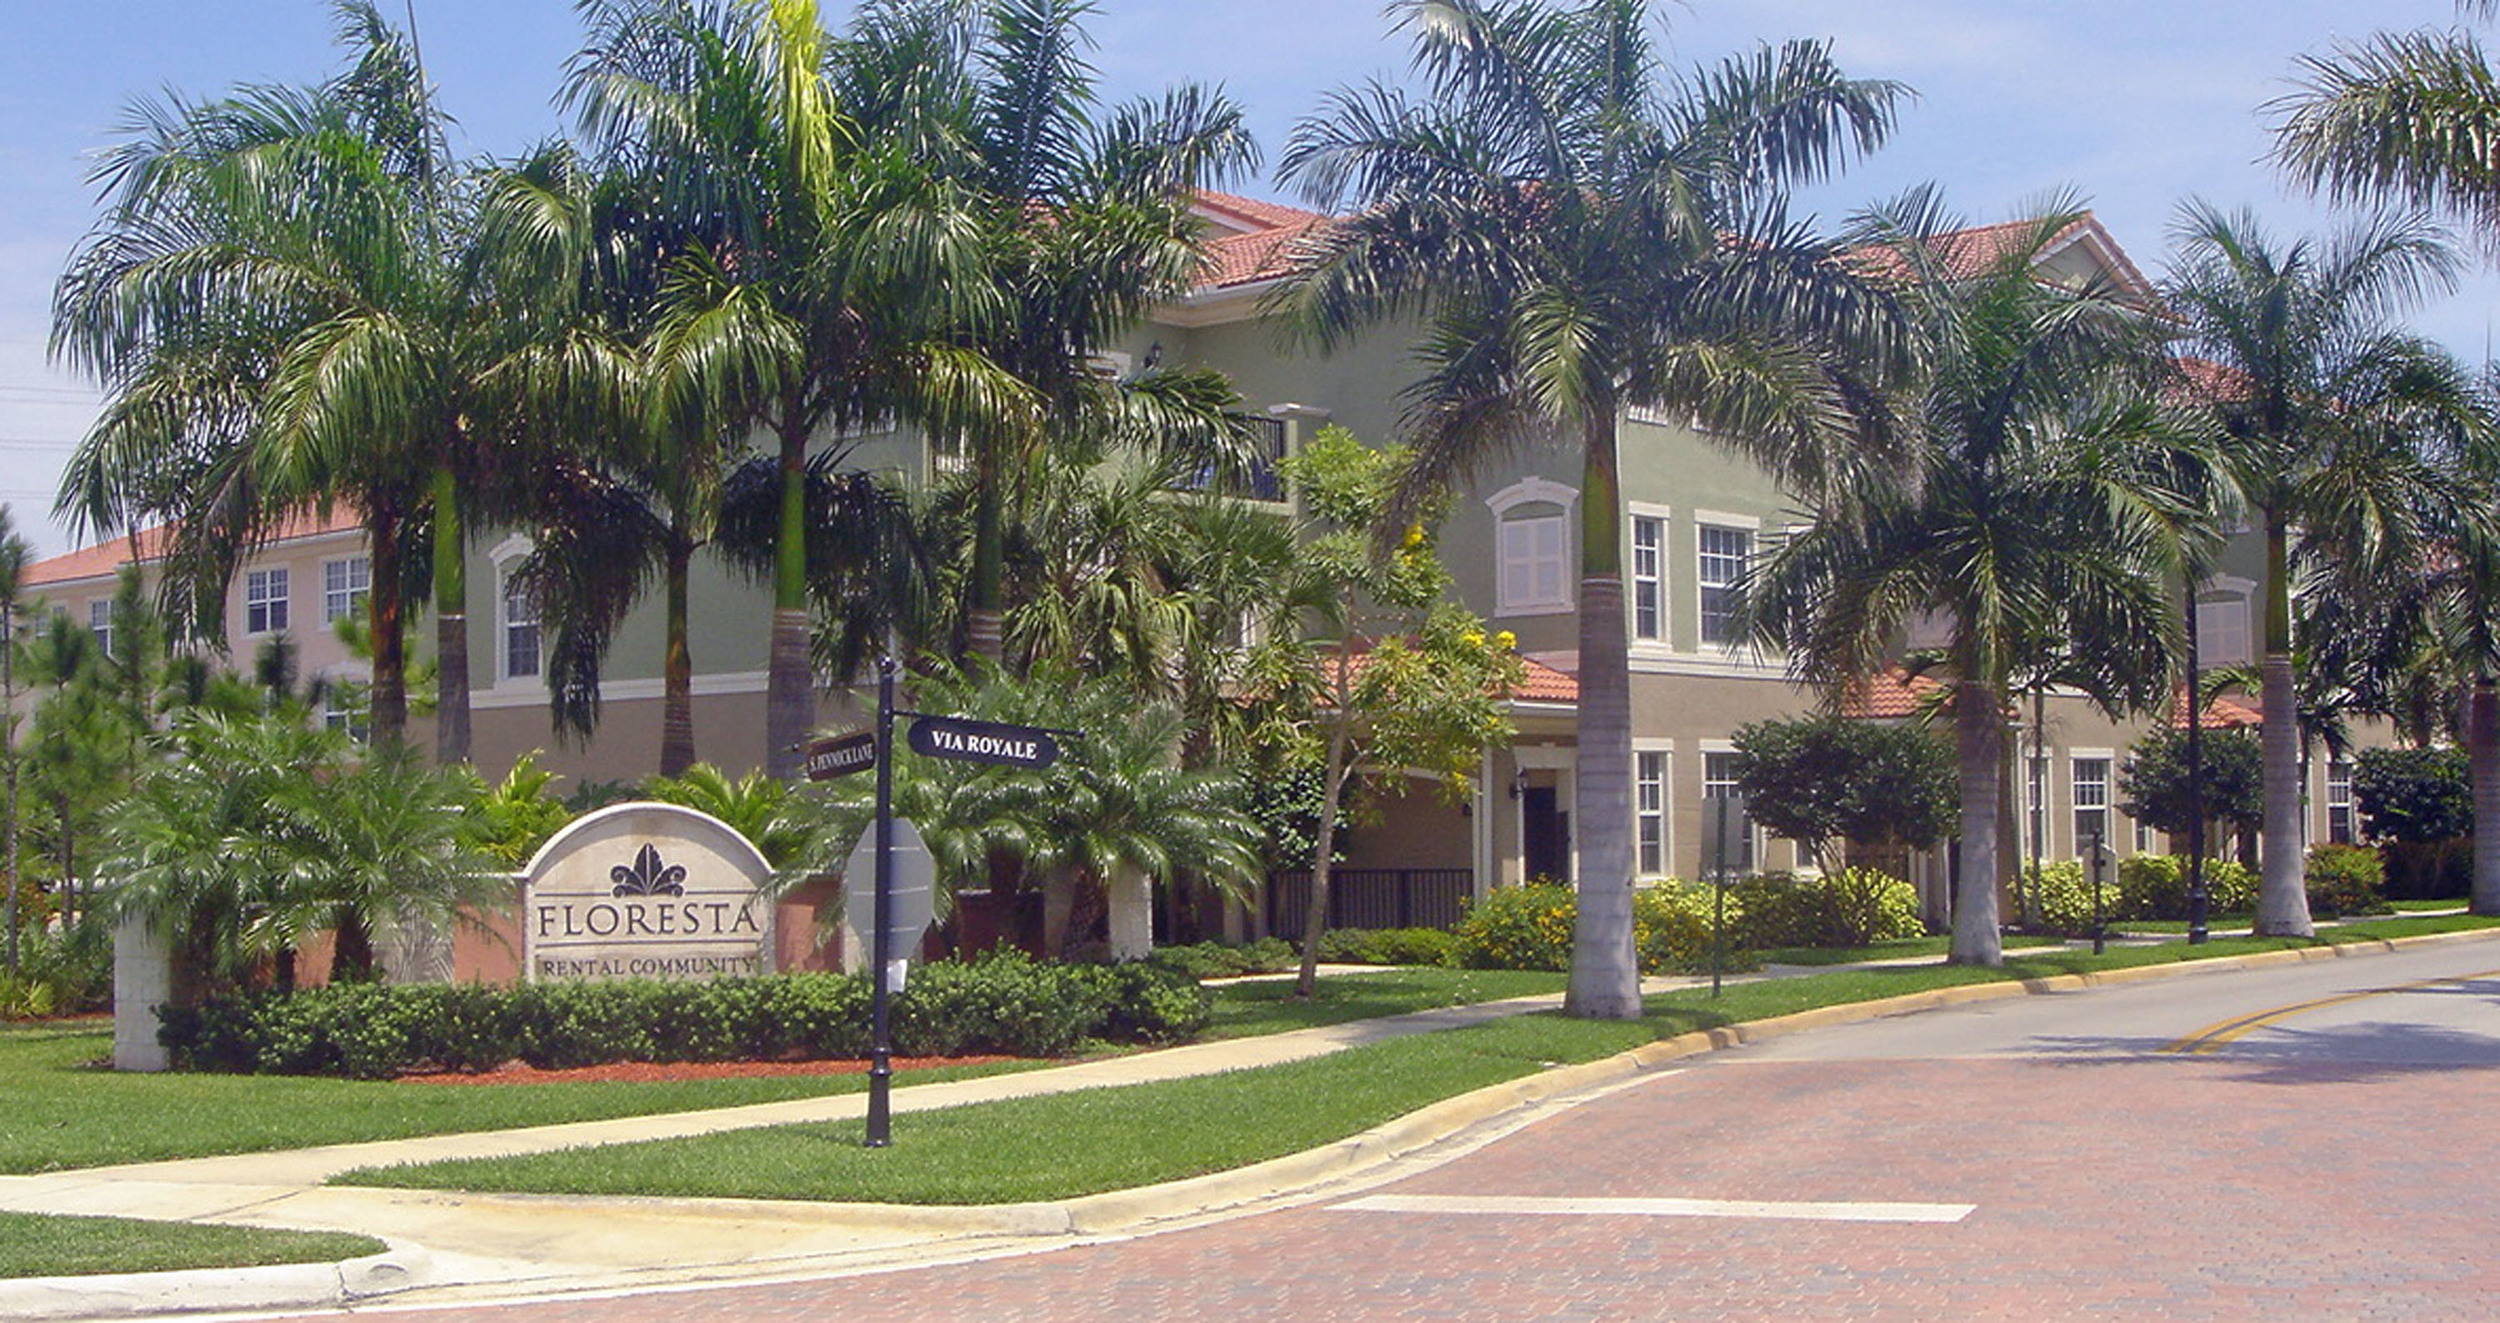 The Gables Floresta Jupiter Florida Entry Monument Sign.jpg